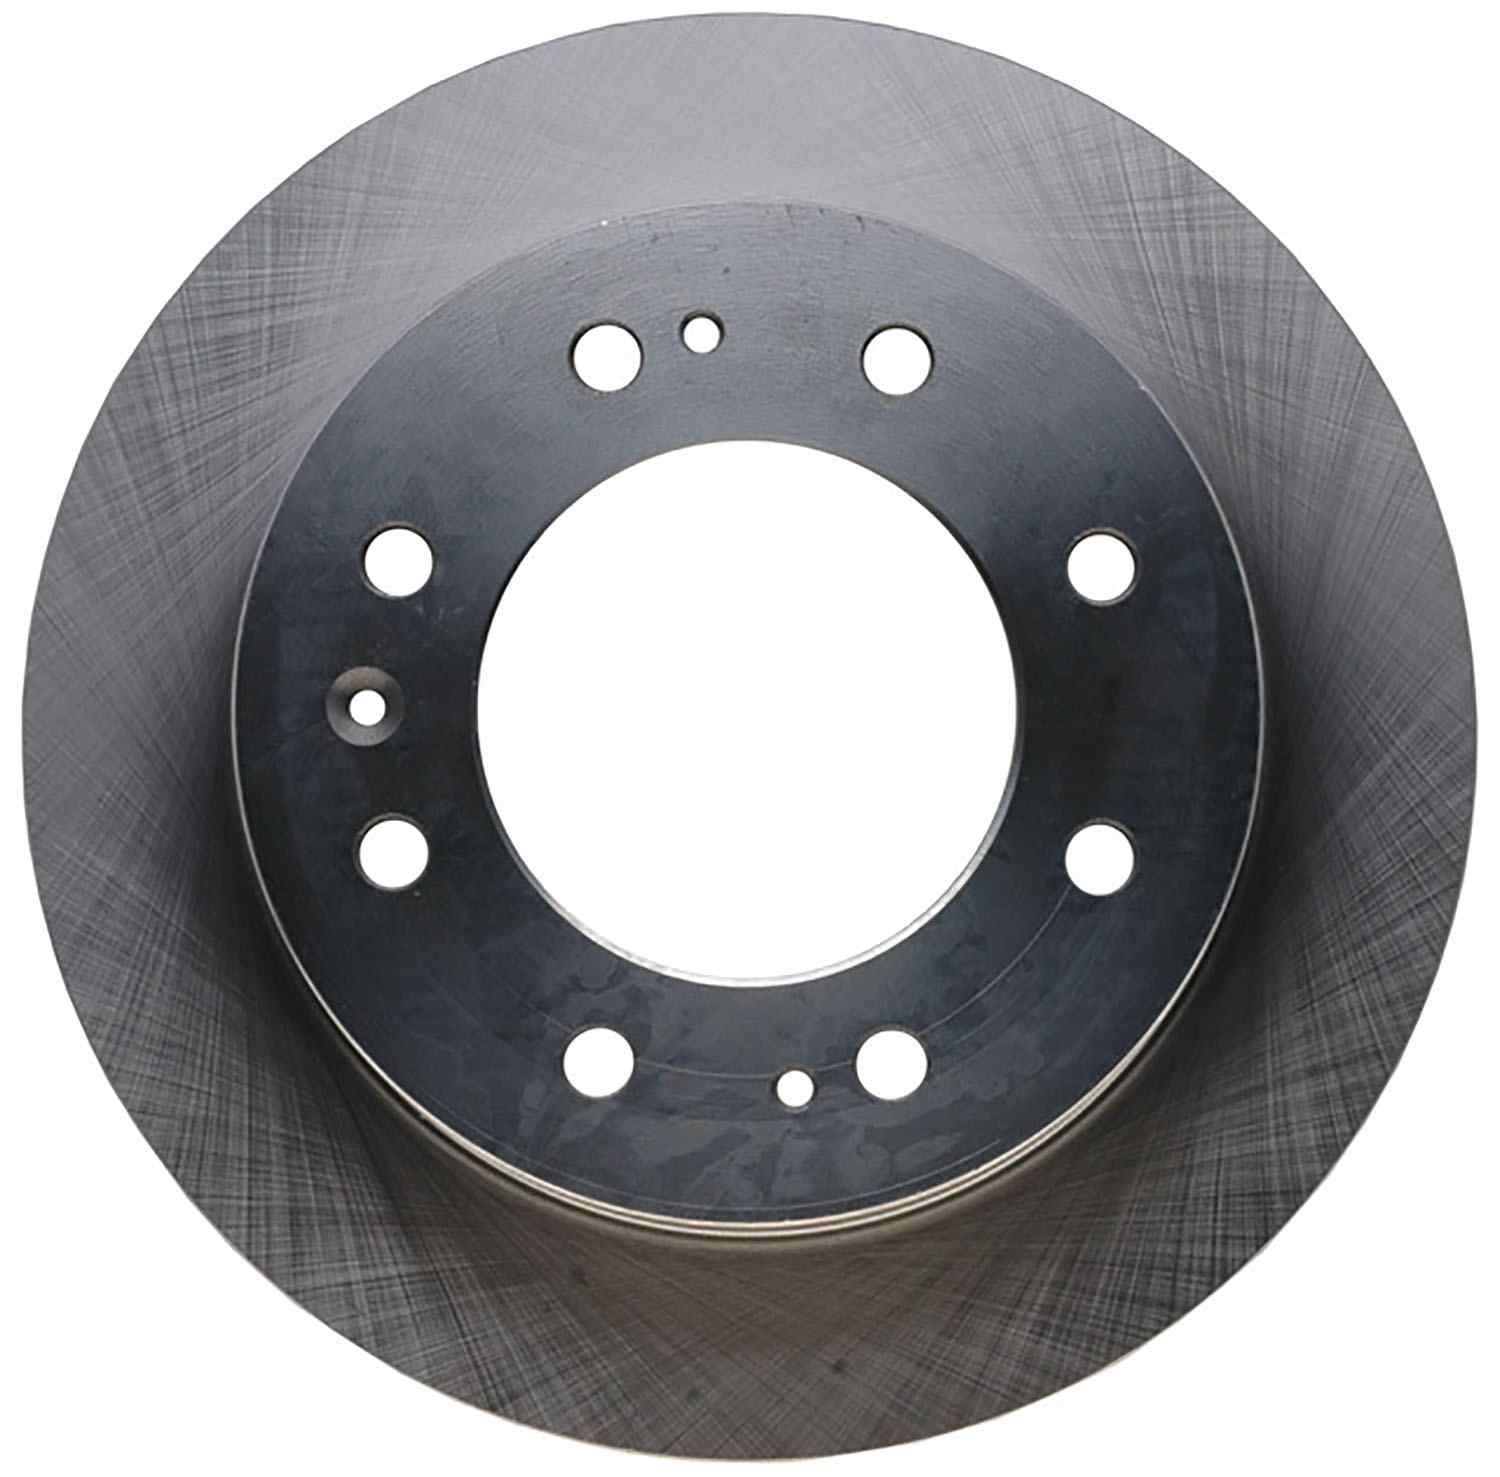 ACDELCO PROFESSIONAL BRAKES - Disc Brake Rotor (Front) - ADU 18A2804